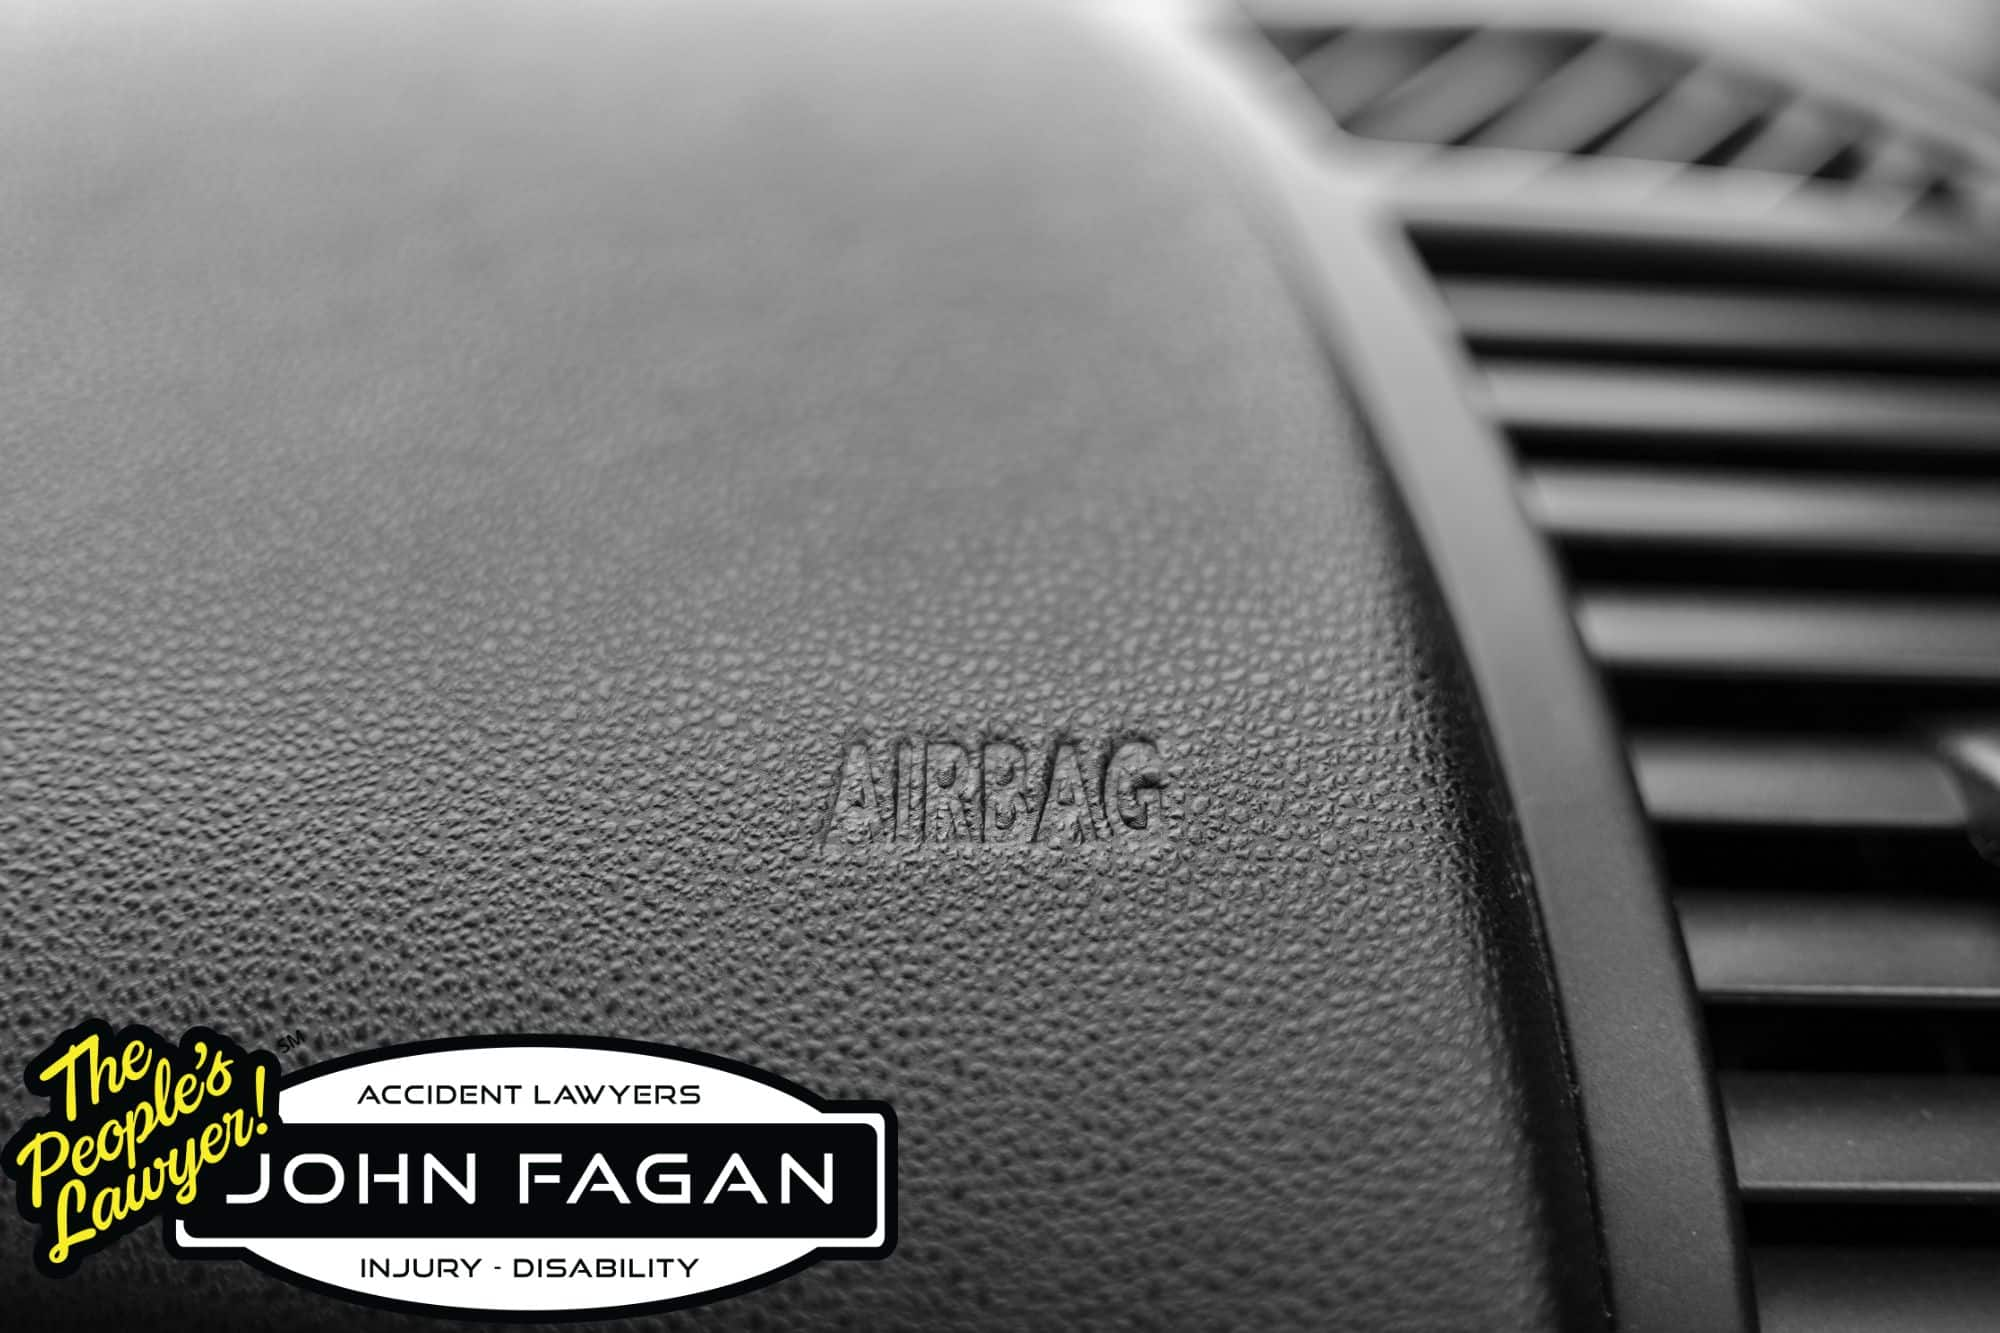 Recall on Takata airbags – Nearly two dozen vehicle brands affected By John Fagan More than two dozen automakers are recalling frontal airbags, made by major parts supplier Takata, for both the driver and passenger